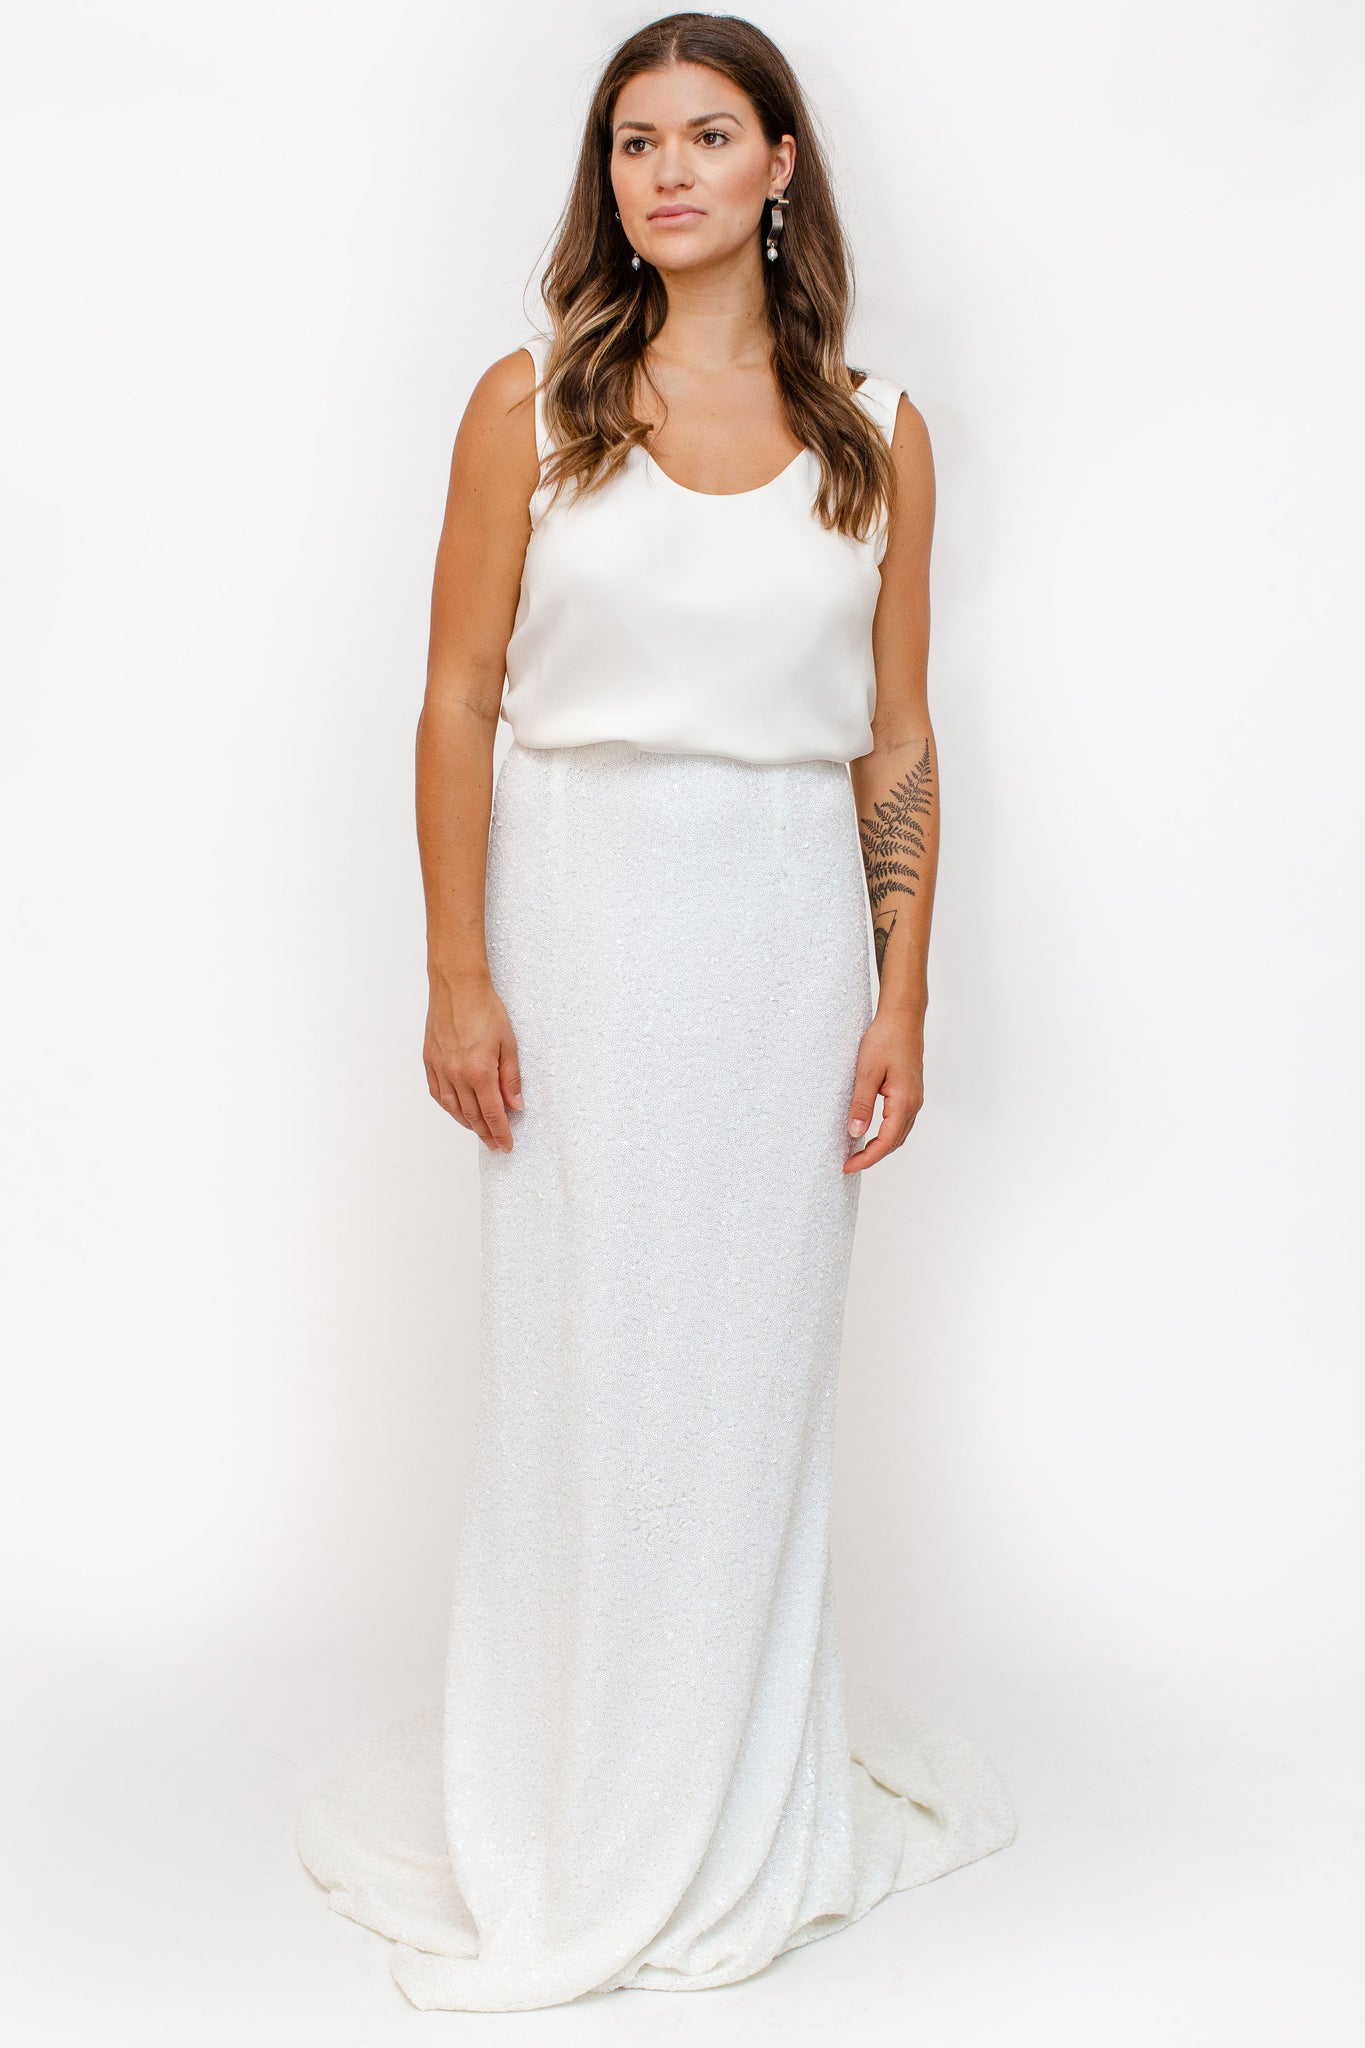 & For Love - Ines Bridal Top - White